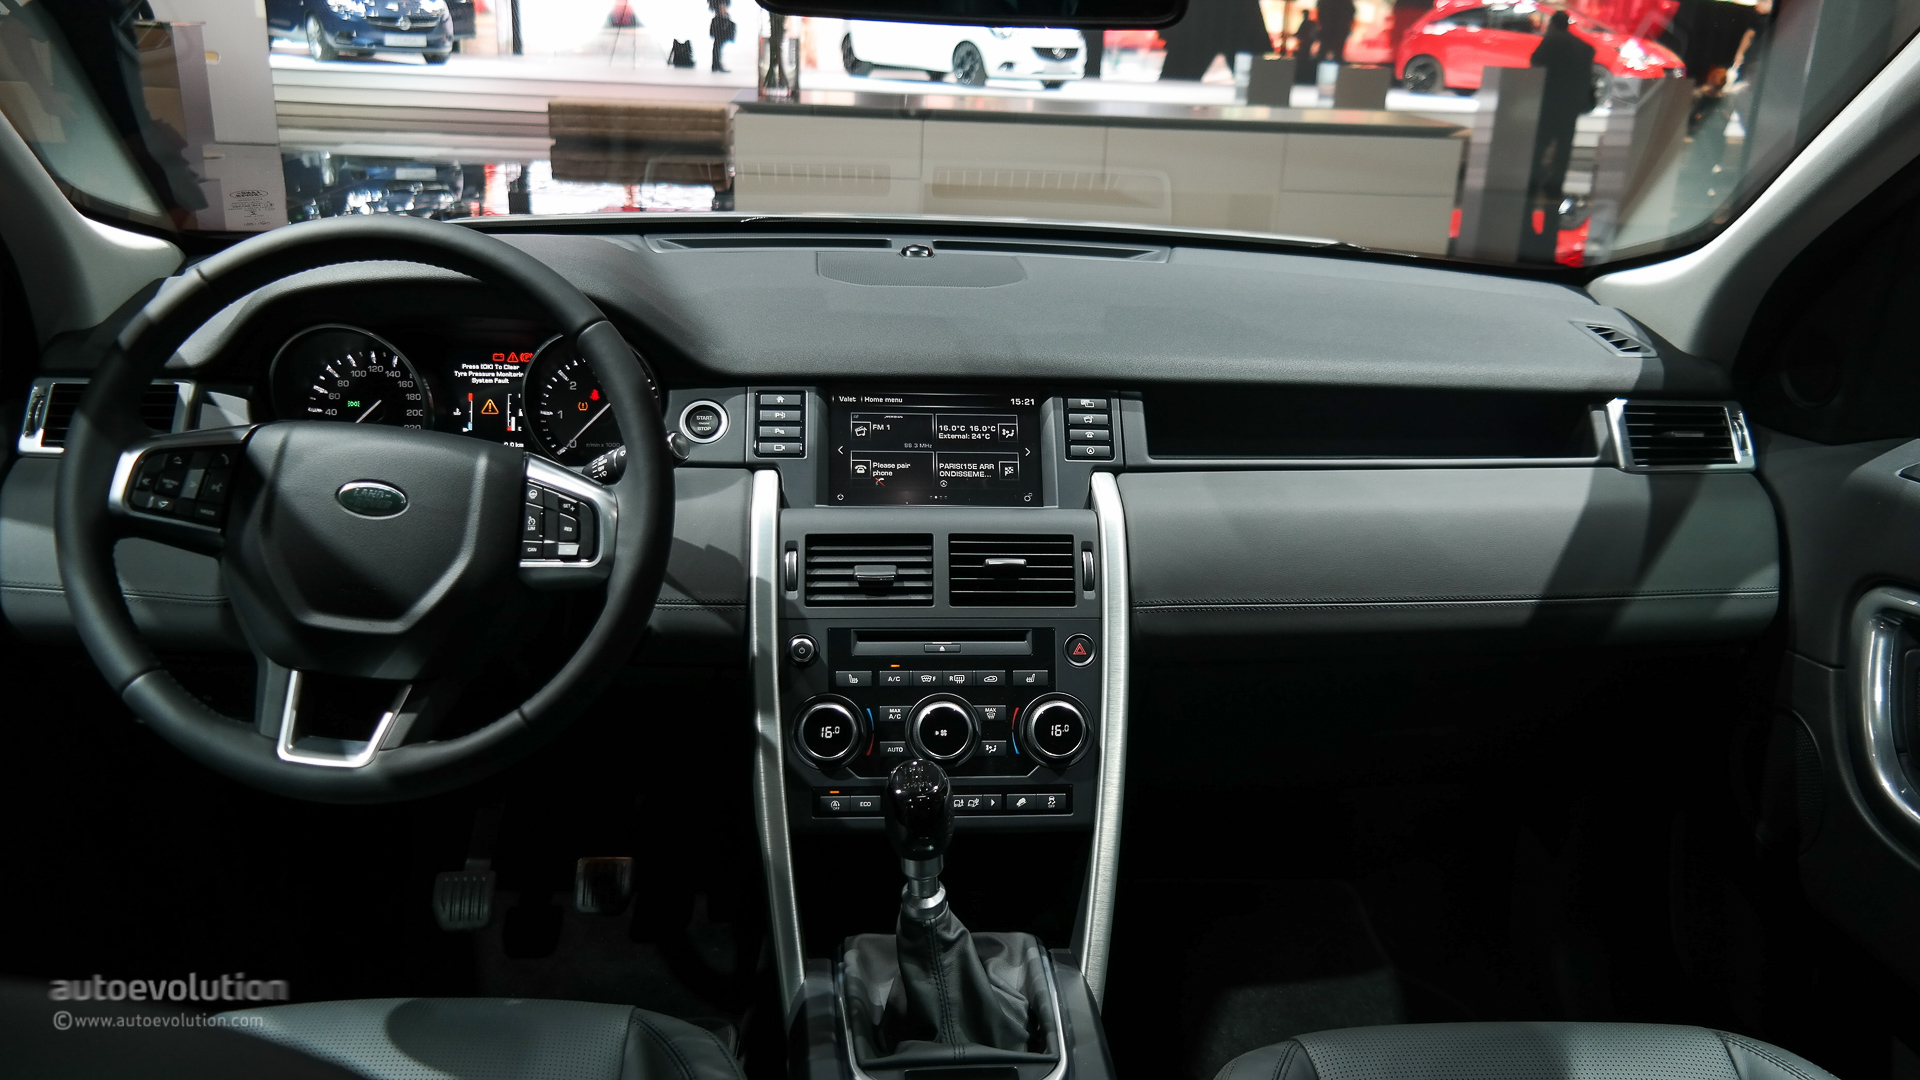 marvelous-design-of-the-black-and-silver-accents-land-rover-discovery-sport-2015-interior-ideas-with-black-steering-wheels-ideas